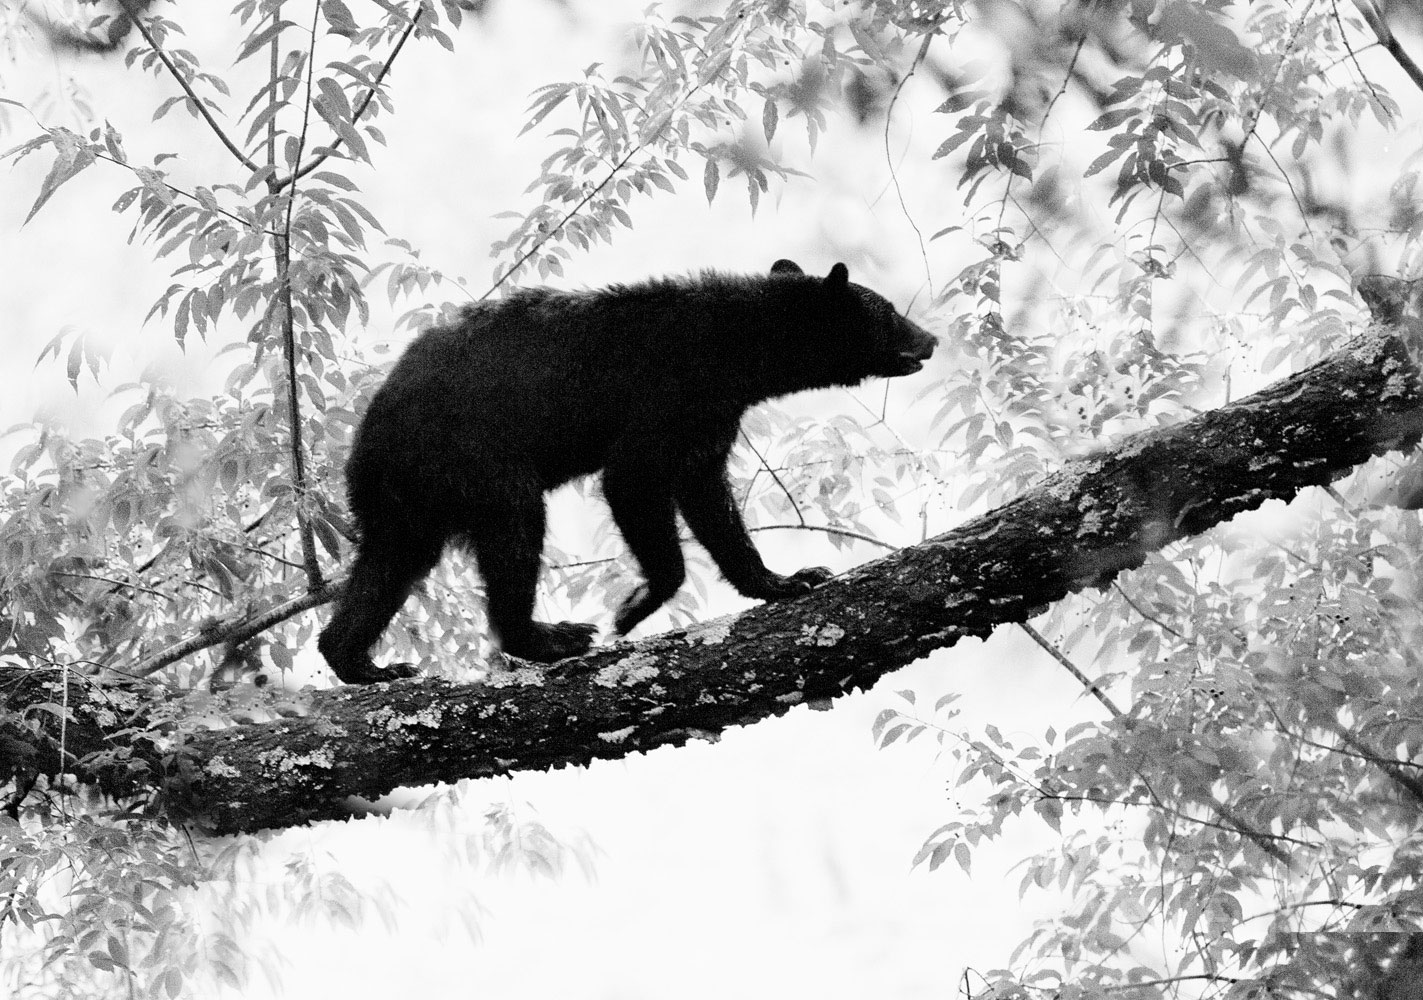 black bear, cub, cherry tree, summer, great smoky mountains, photograph, image, cades cove, photo